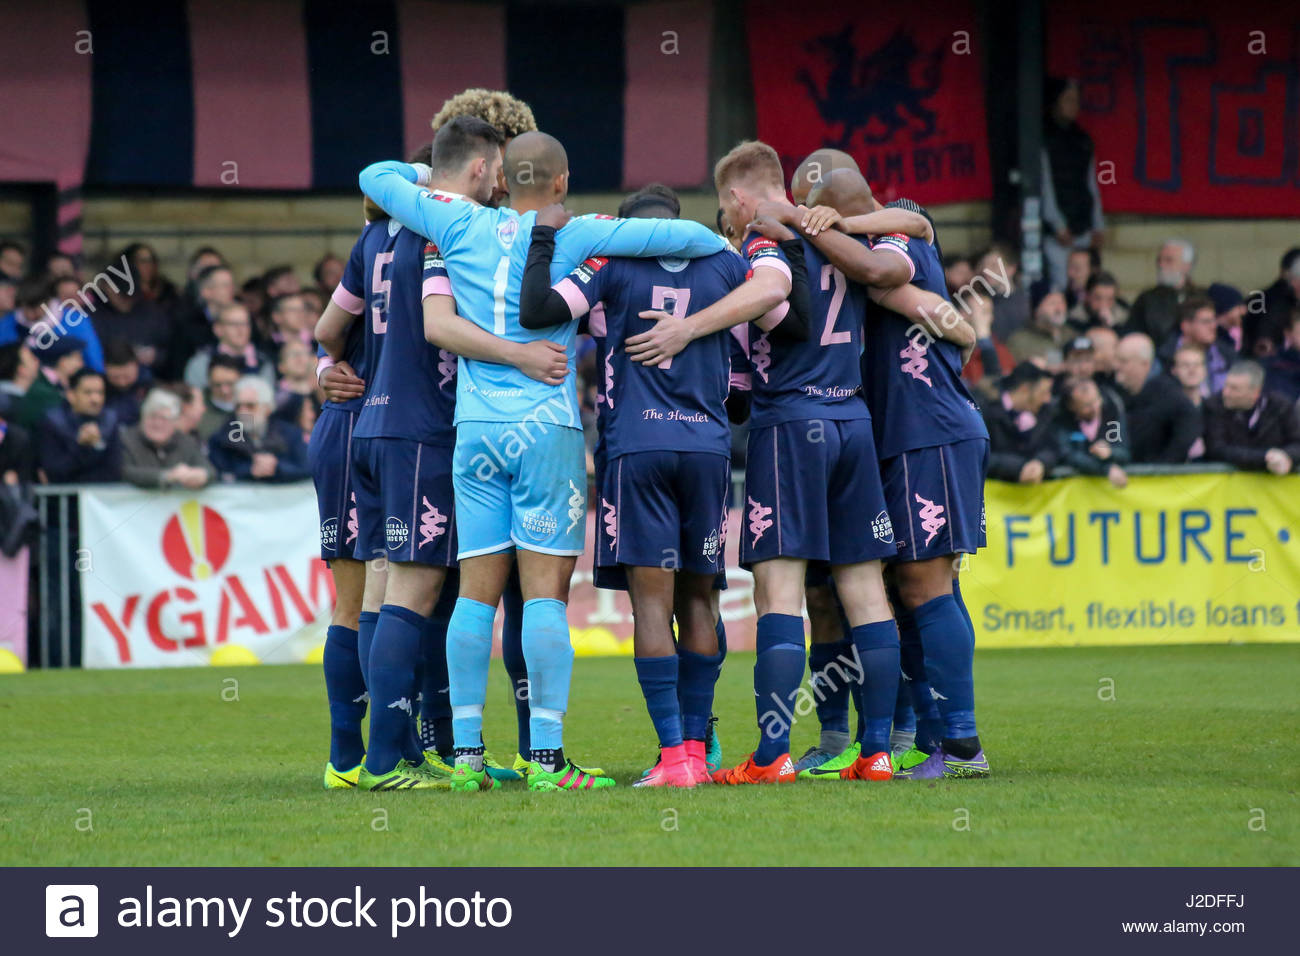 London, UK. 27th April, 2017. Dulwich Hamlet team huddle before the Ryman Premier Play-Offs Semi-Finals match between - Stock Image